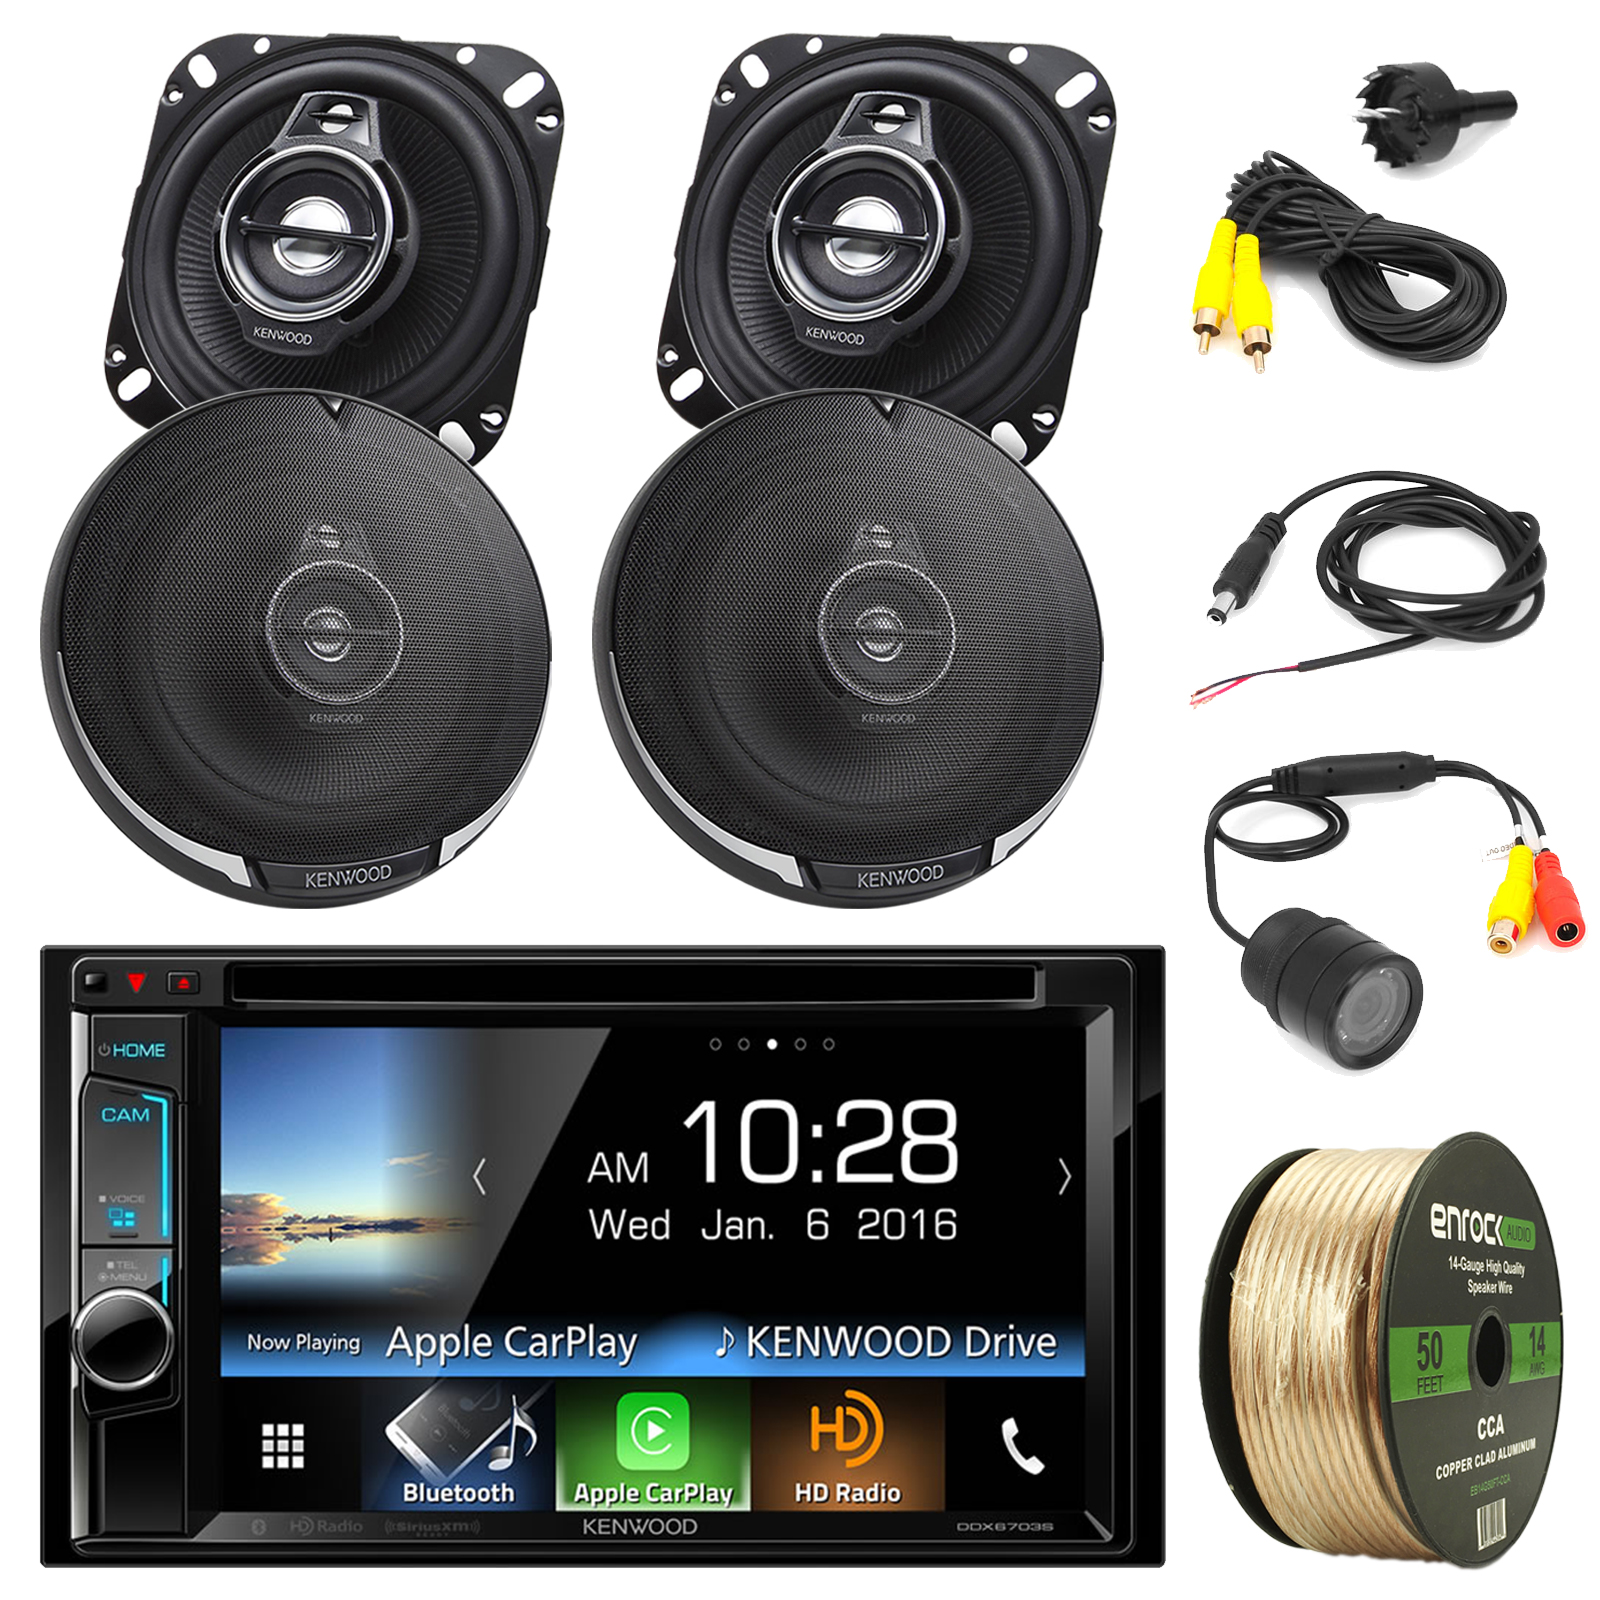 "Kenwood DDX6703S Car Stereo w/ 6.2"" Touch Screen + 2 x Kenwood KFC-1095PS 4"" 3-Way Black Speakers ( 2 pairs)+ PYLE PLCM22IR Rear View Camera with Night Vision + Enrock 14 Gauge 50FT Speaker Wire"